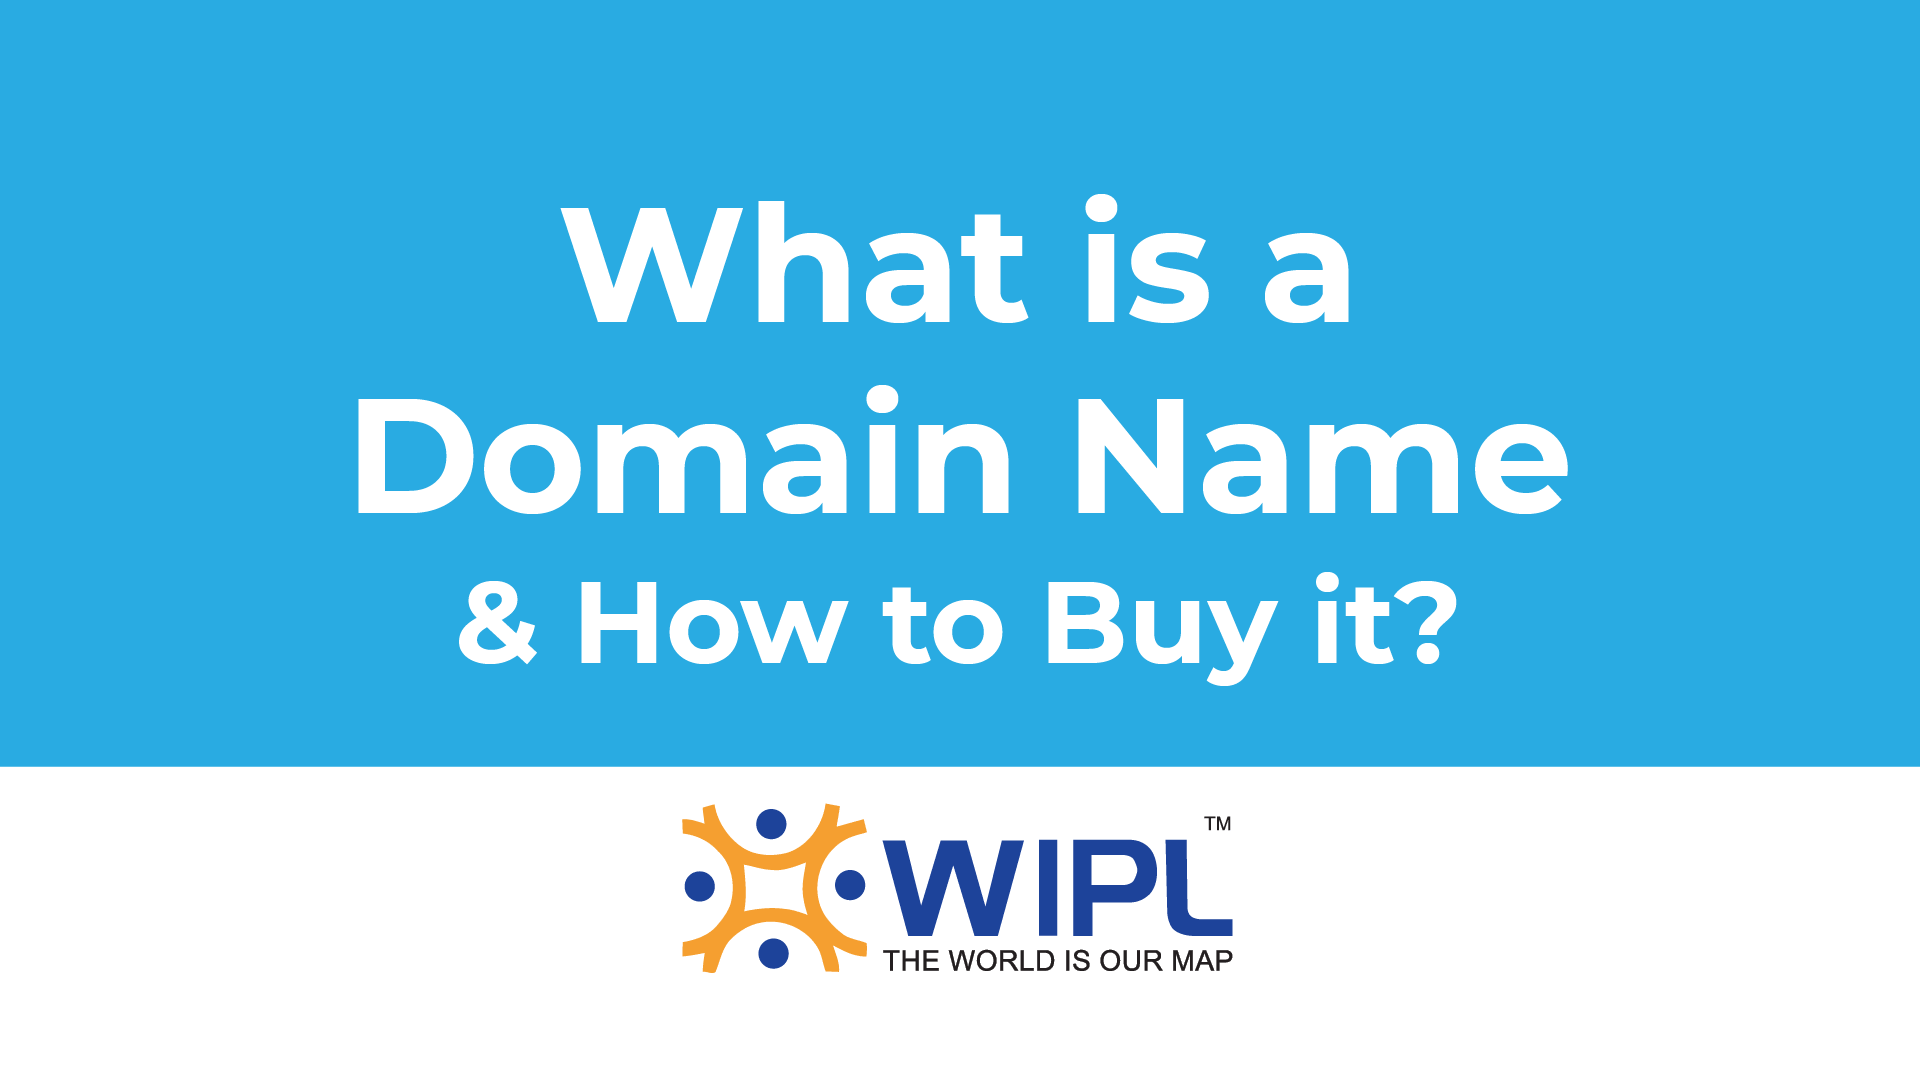 What is a Domain Name and How to buy it